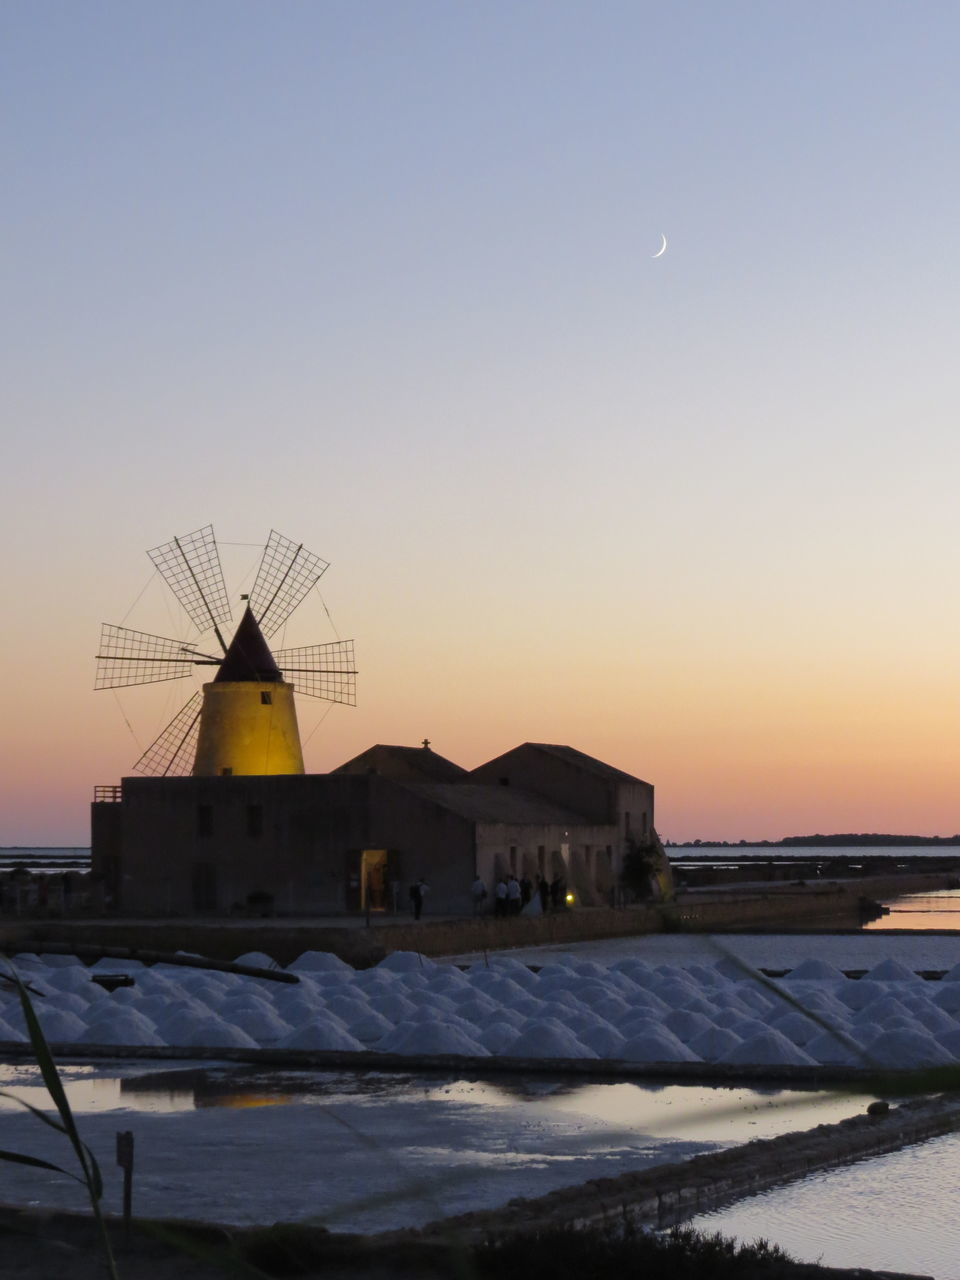 sunset, built structure, building exterior, cold temperature, architecture, sky, nature, no people, moon, clear sky, snow, outdoors, winter, beauty in nature, windmill, traditional windmill, astronomy, day